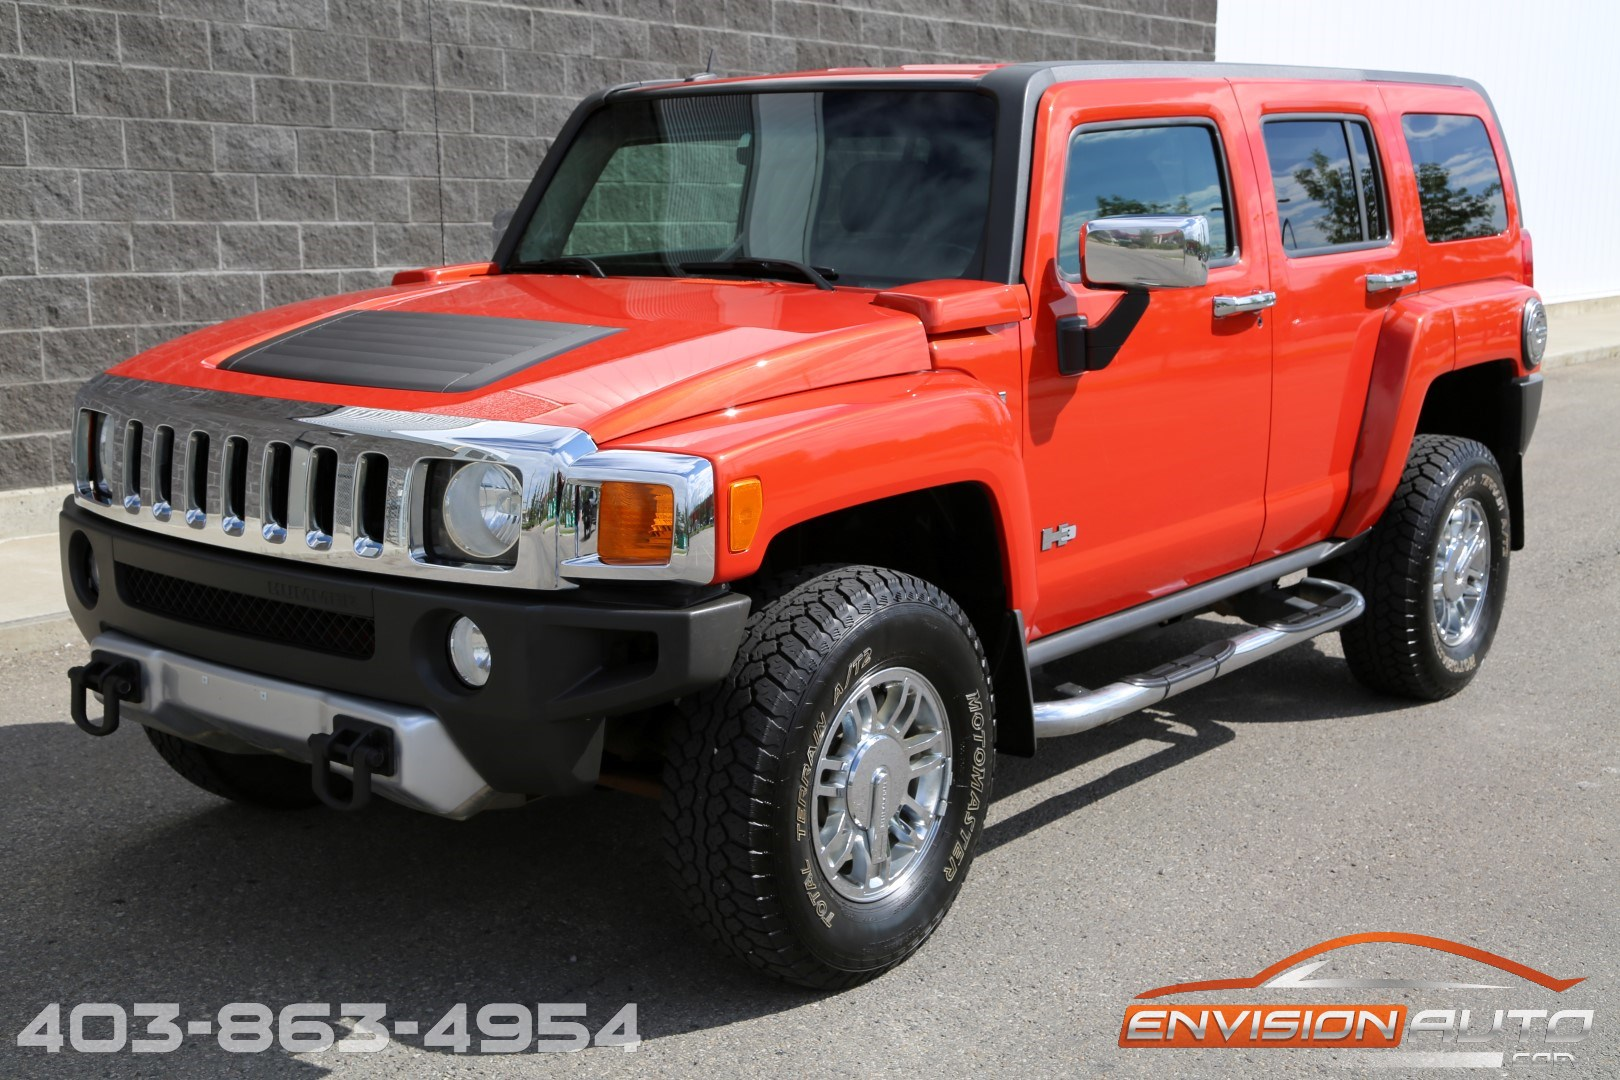 2008 H3 Hummer Alpha 5 3l V8 Luxury Package Envision Auto